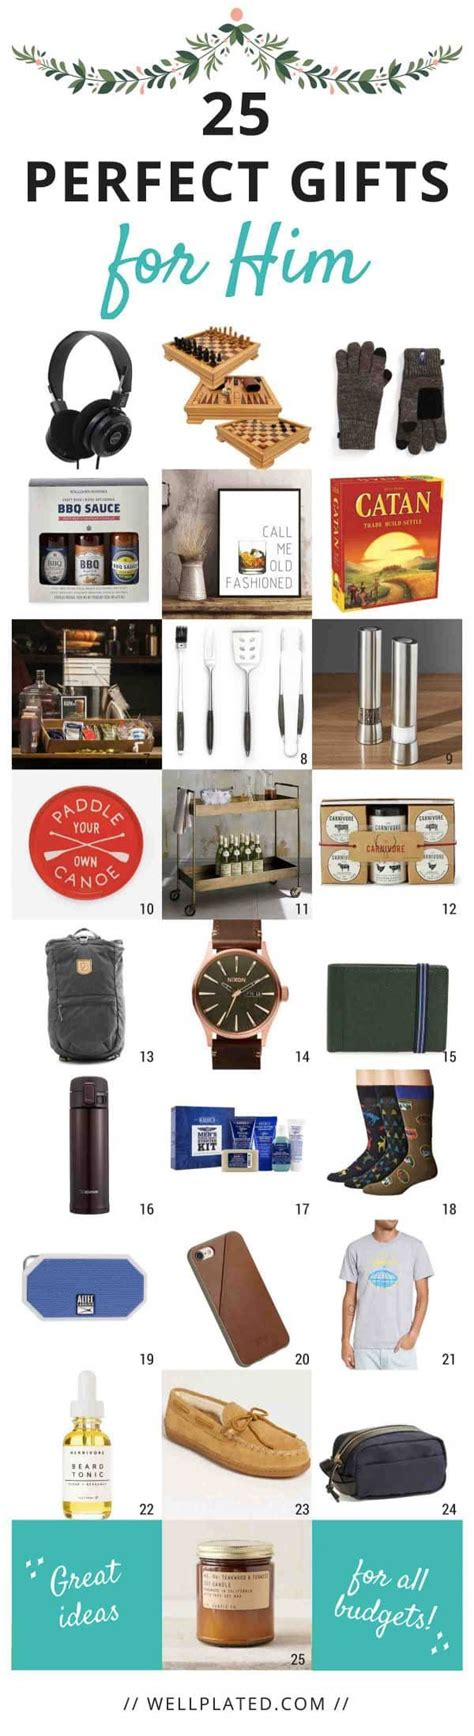 25 gift ideas 25 unique gift ideas for your husband dad boyfriend and